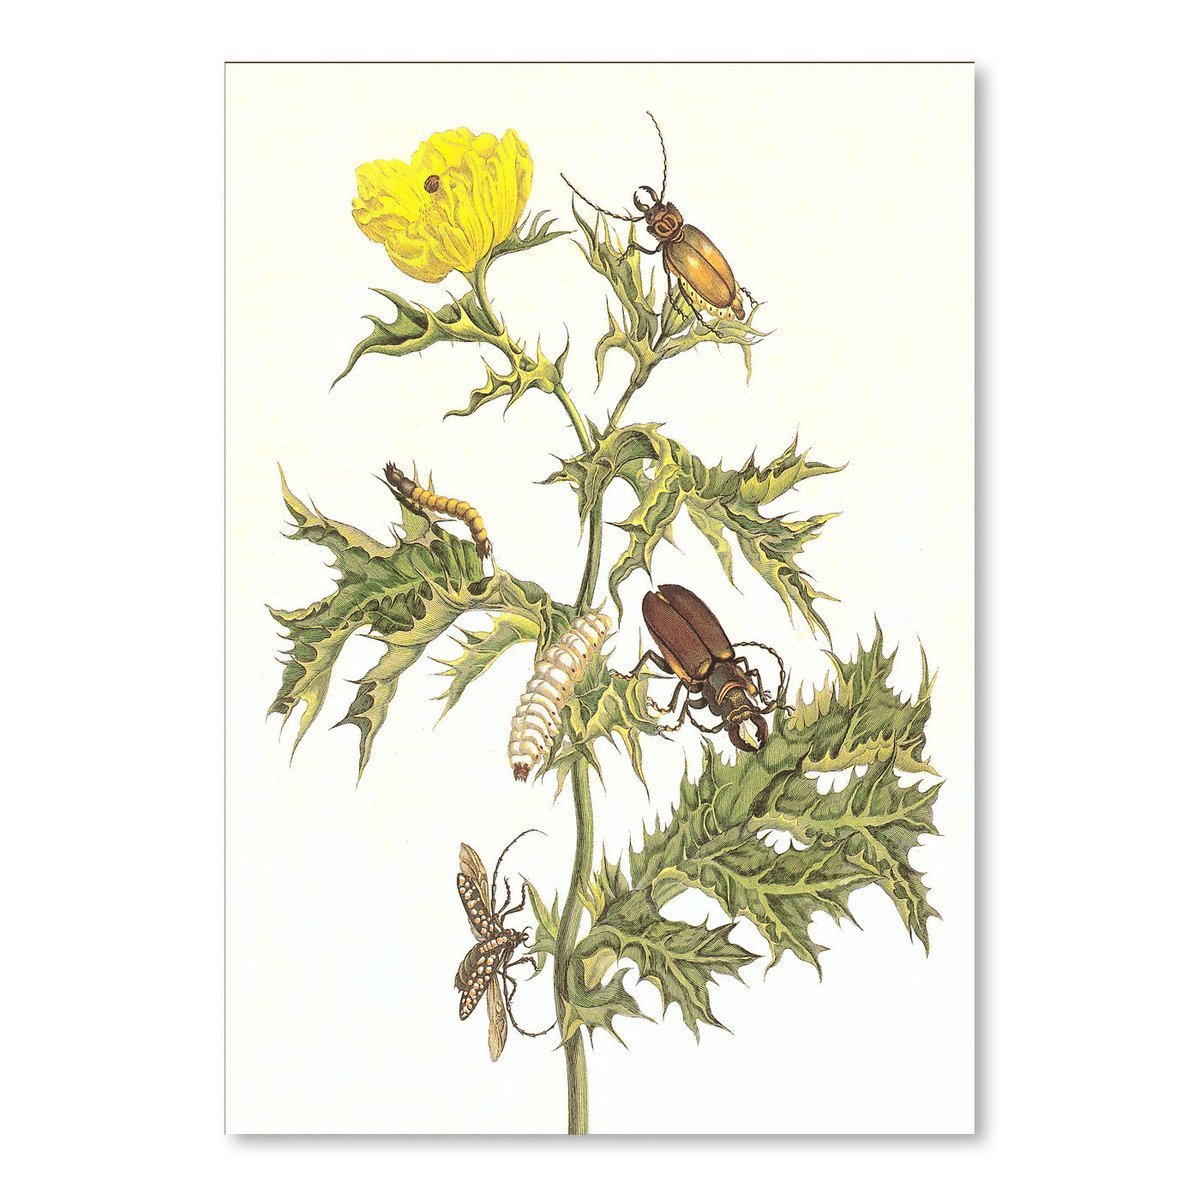 Beetles And Grubs On Thistle by Found Image Press Art Print - Art Print - Americanflat